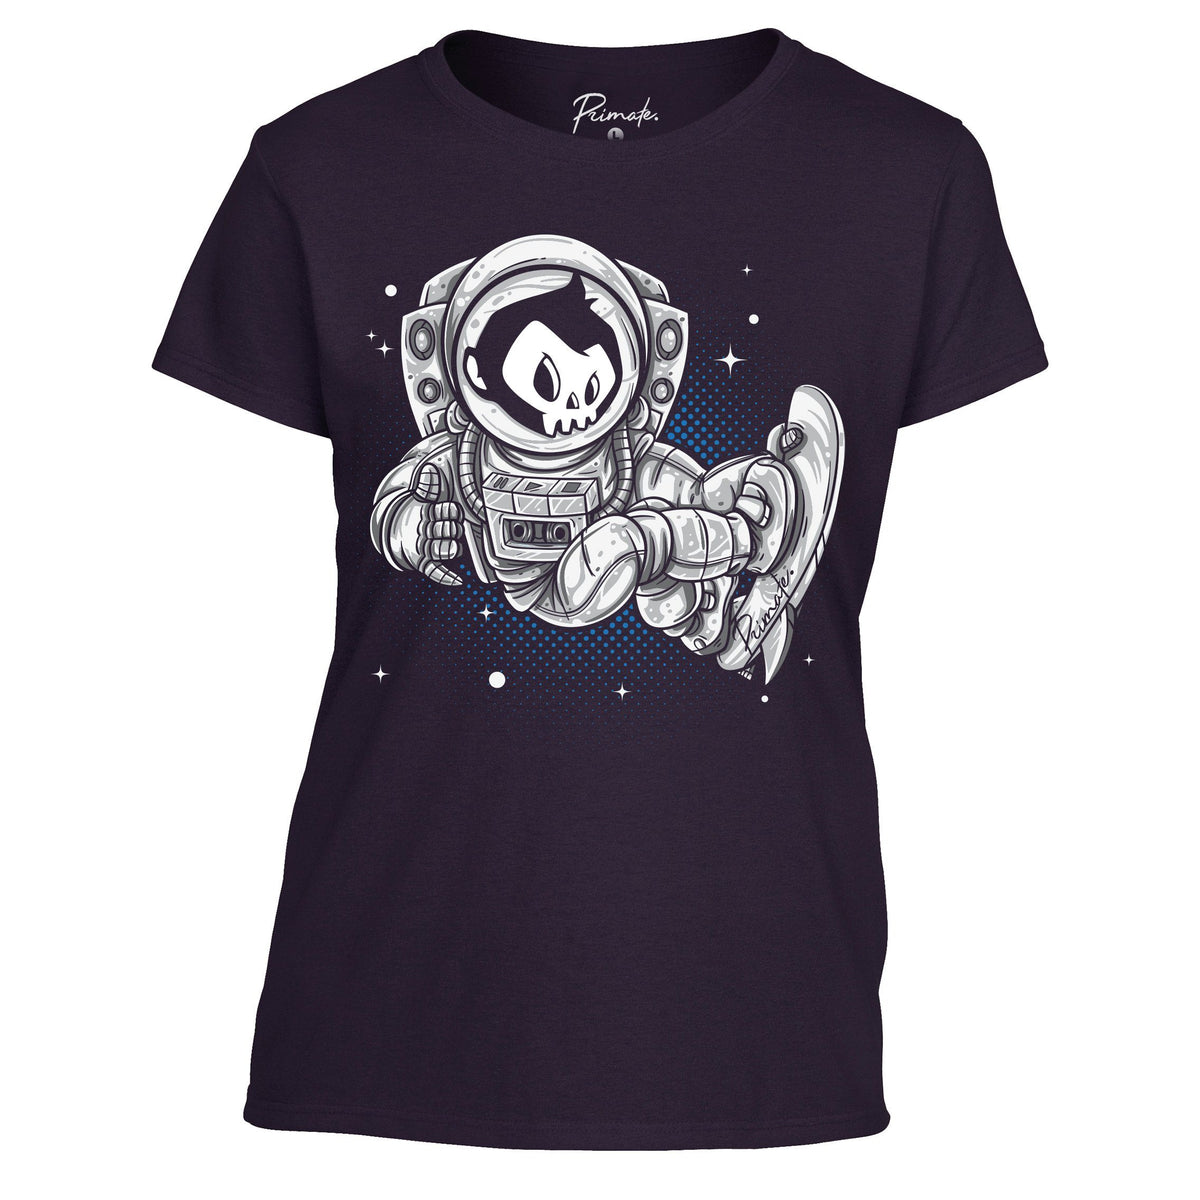 Primate Space Skater - T-Shirt Primate. Fashion Womens: Small